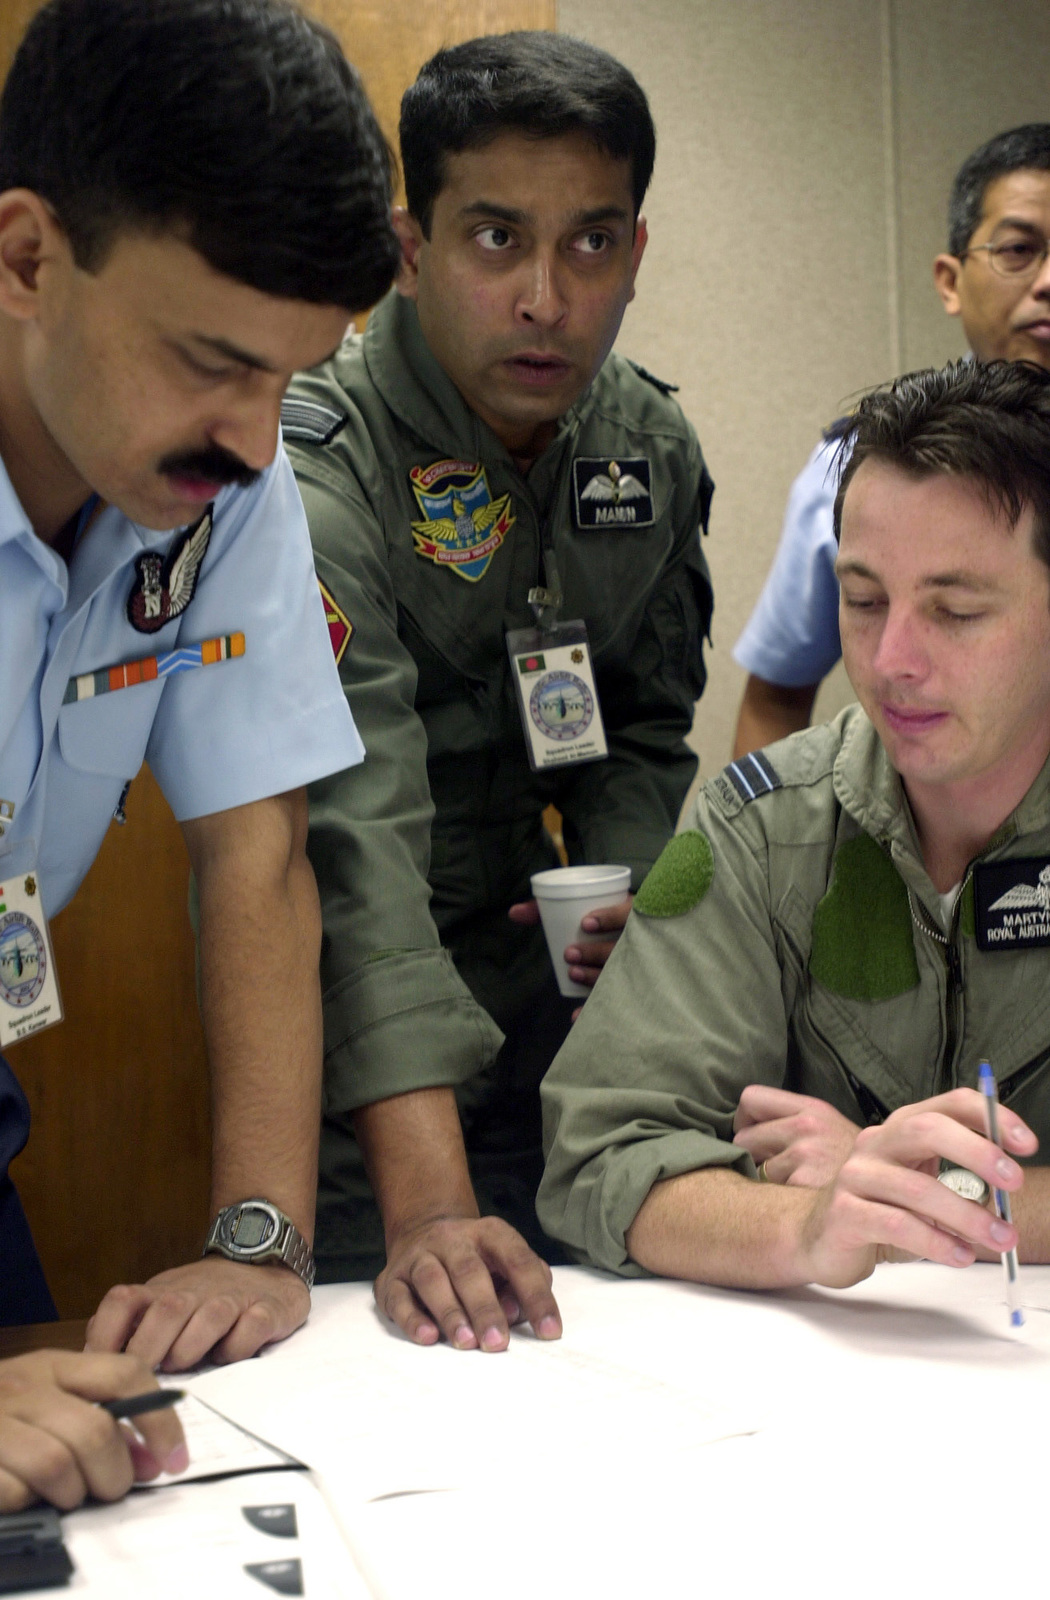 Squadron Leaders, B.S. Kanwar, (left), Indian Air Force, and Shaheed Al-mamun, Bangladesh Air Force along with Flight Lieutenant Martyn Silver, (right), Royal Australian Air Force exchanges ideas about flightline activities in preparation for PACIFIC AIRLIFT RALLY 2001 on Andersen AFB, Guam. PACIFIC AIRLIFT RALLY (PAR) is a PACAF-sponsored Military Airlift symposium for countries in the pacific region. PAR, held every two years and hosted by a pacific nation, this year Guam is the host nation with the symposium staging out of Andersen AFB. The symposium includes informational seminars with area of expertise briefings, a Command Post Exercise (CPX) which addresses military airlift support...